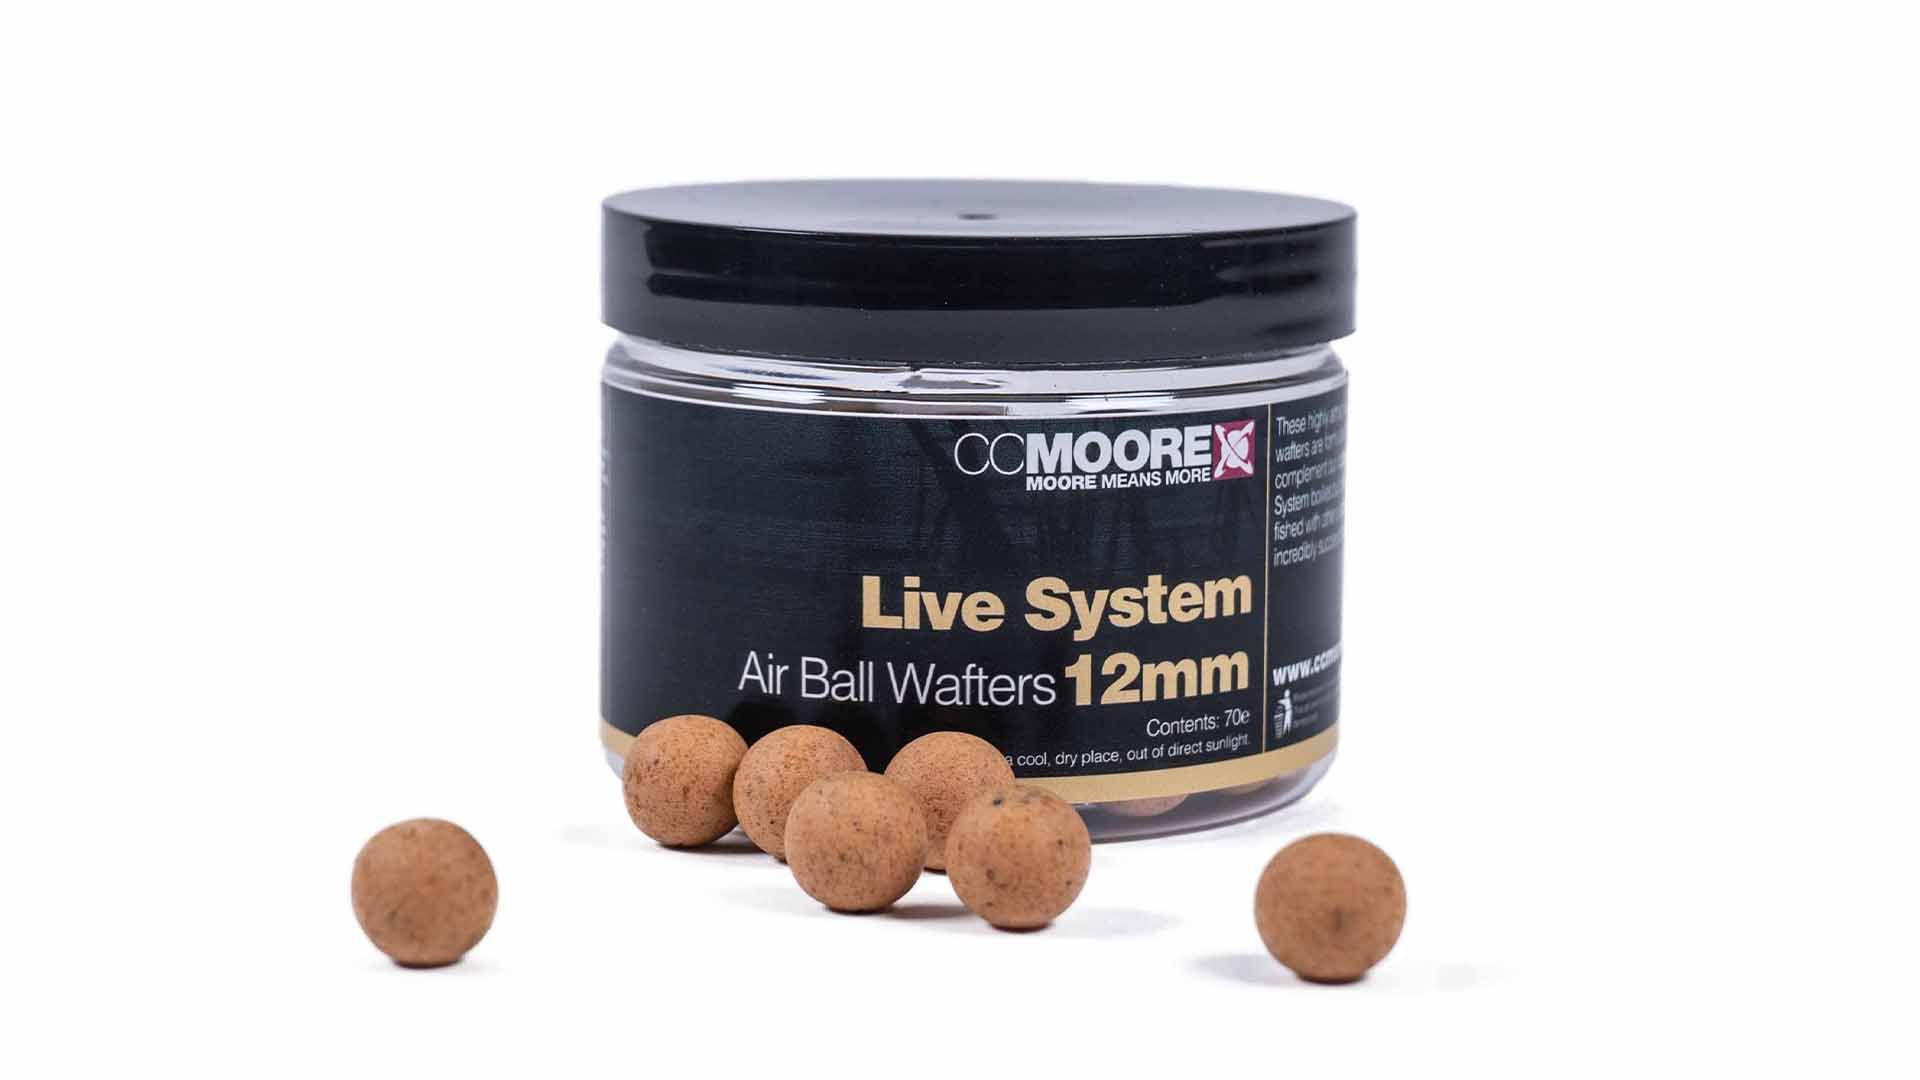 CC Moore Live System 12mm Wafters